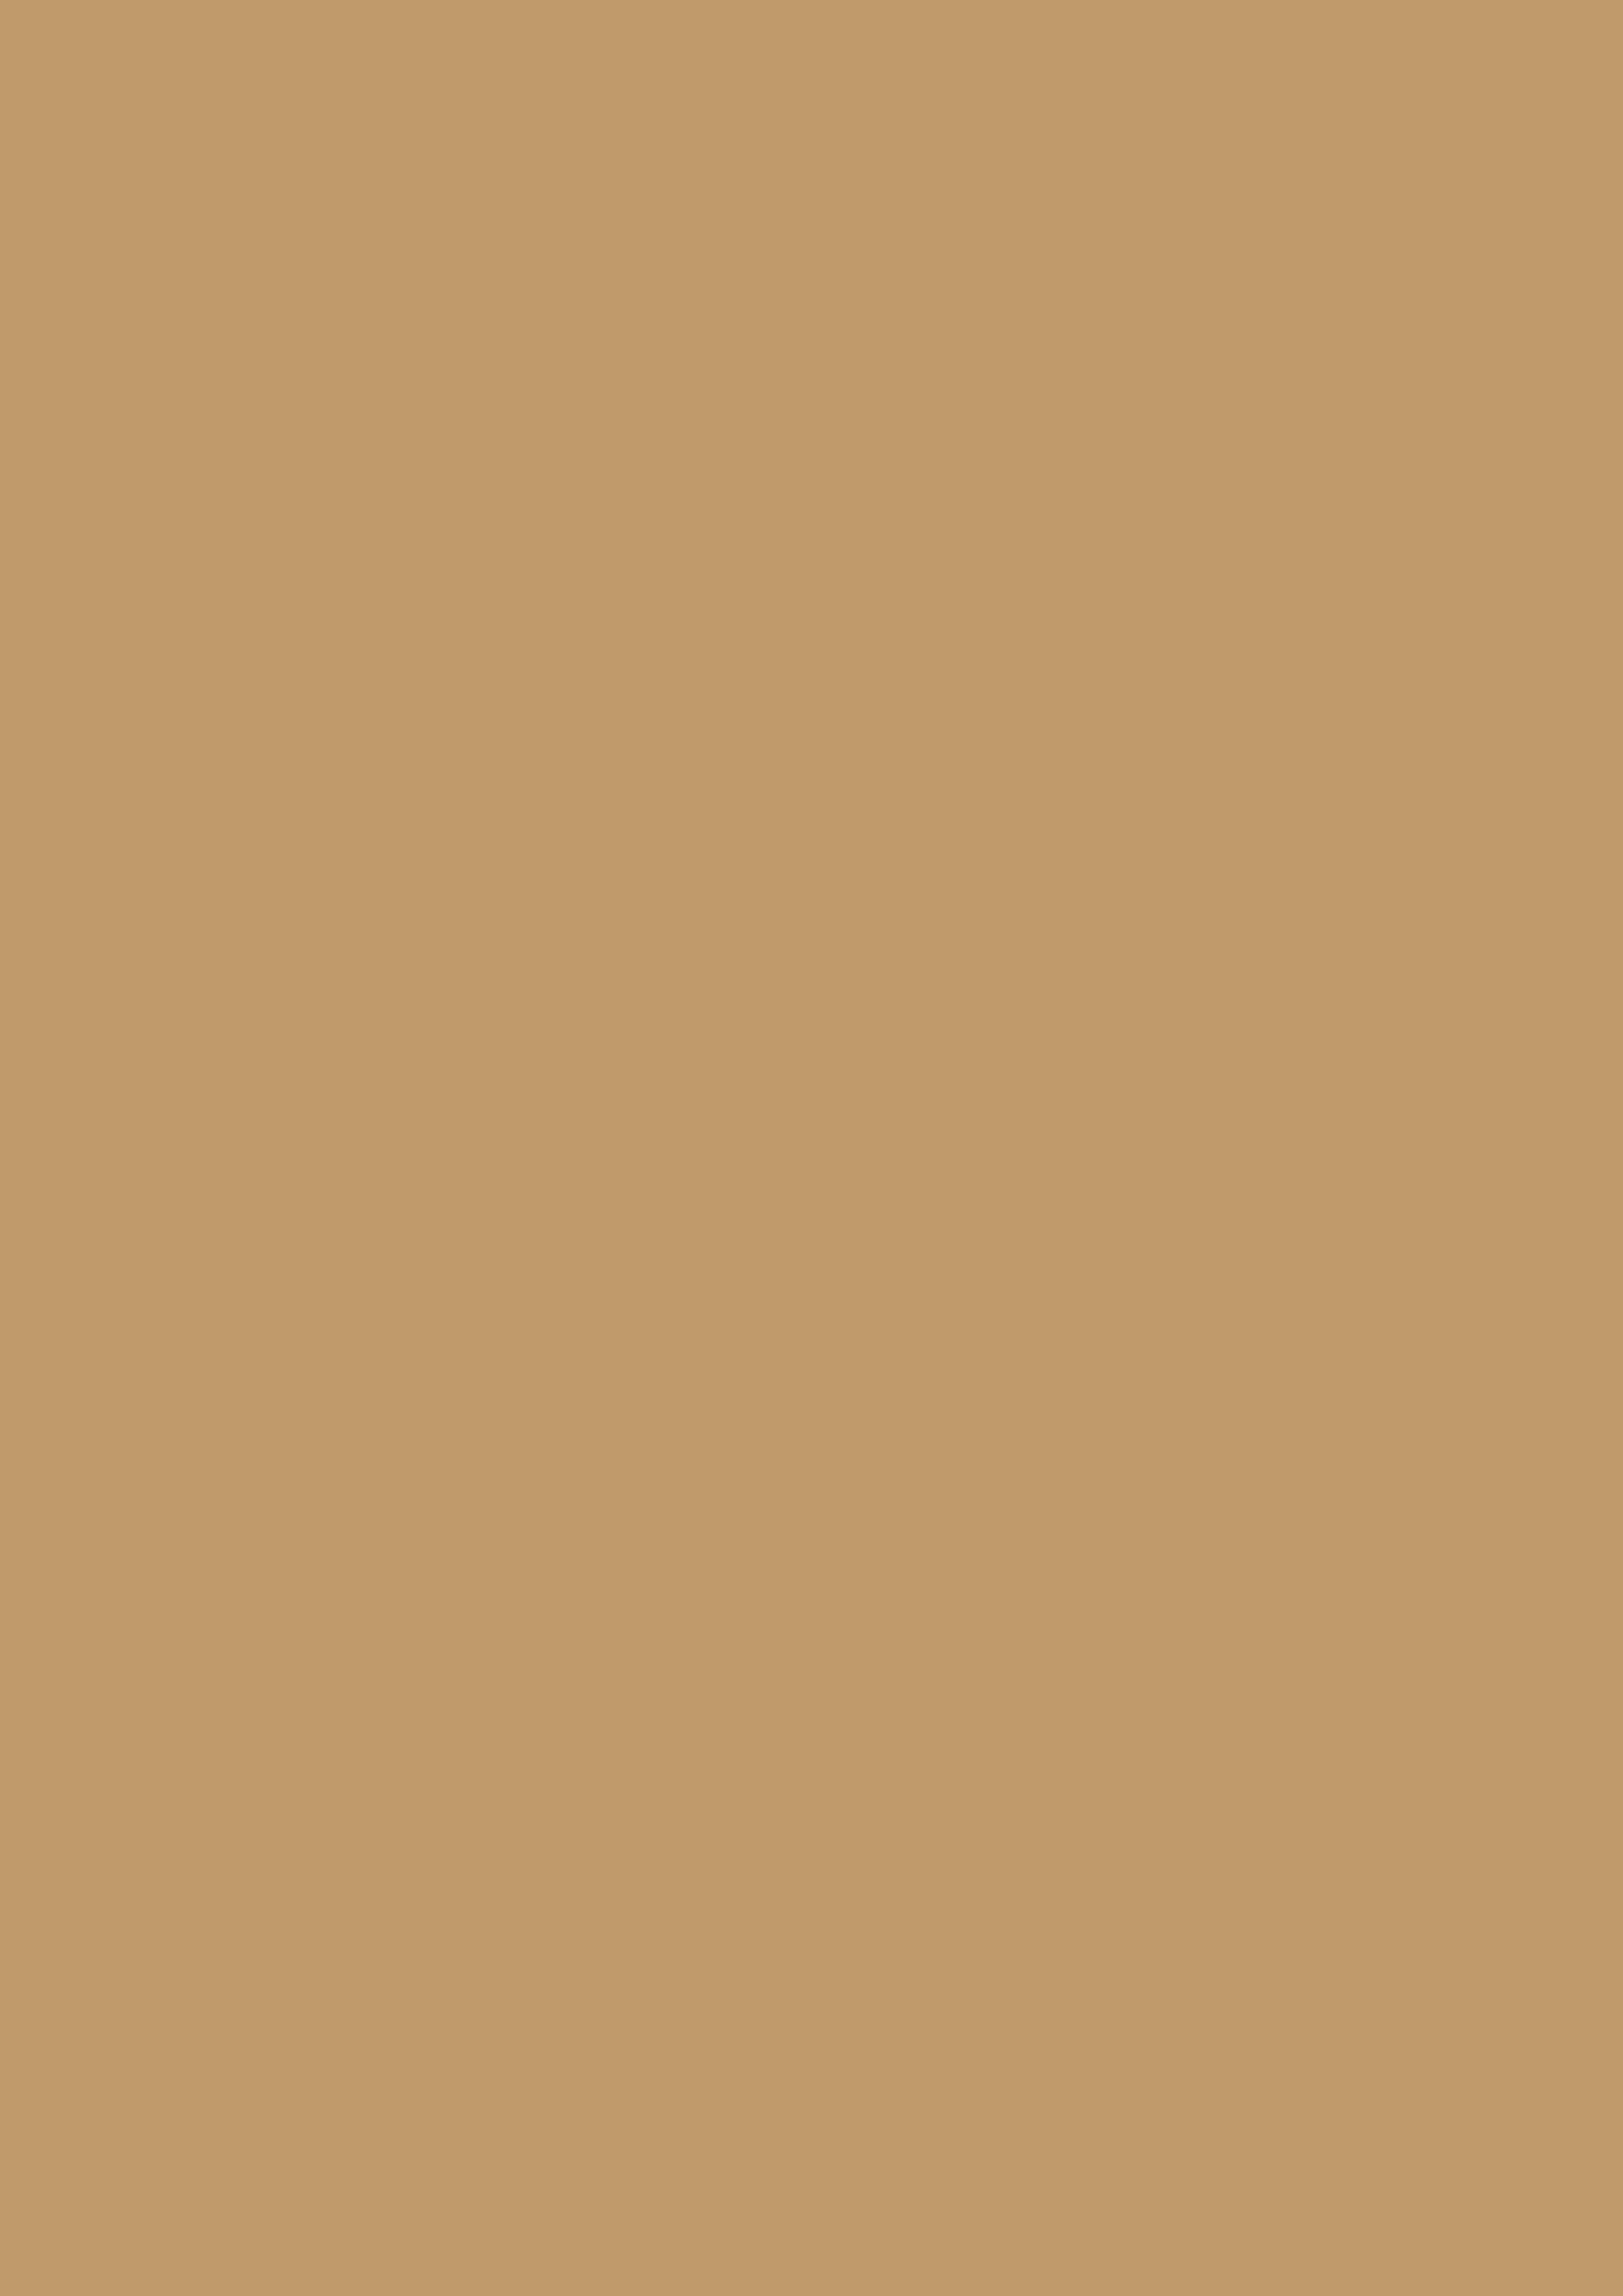 2480x3508 Wood Brown Solid Color Background